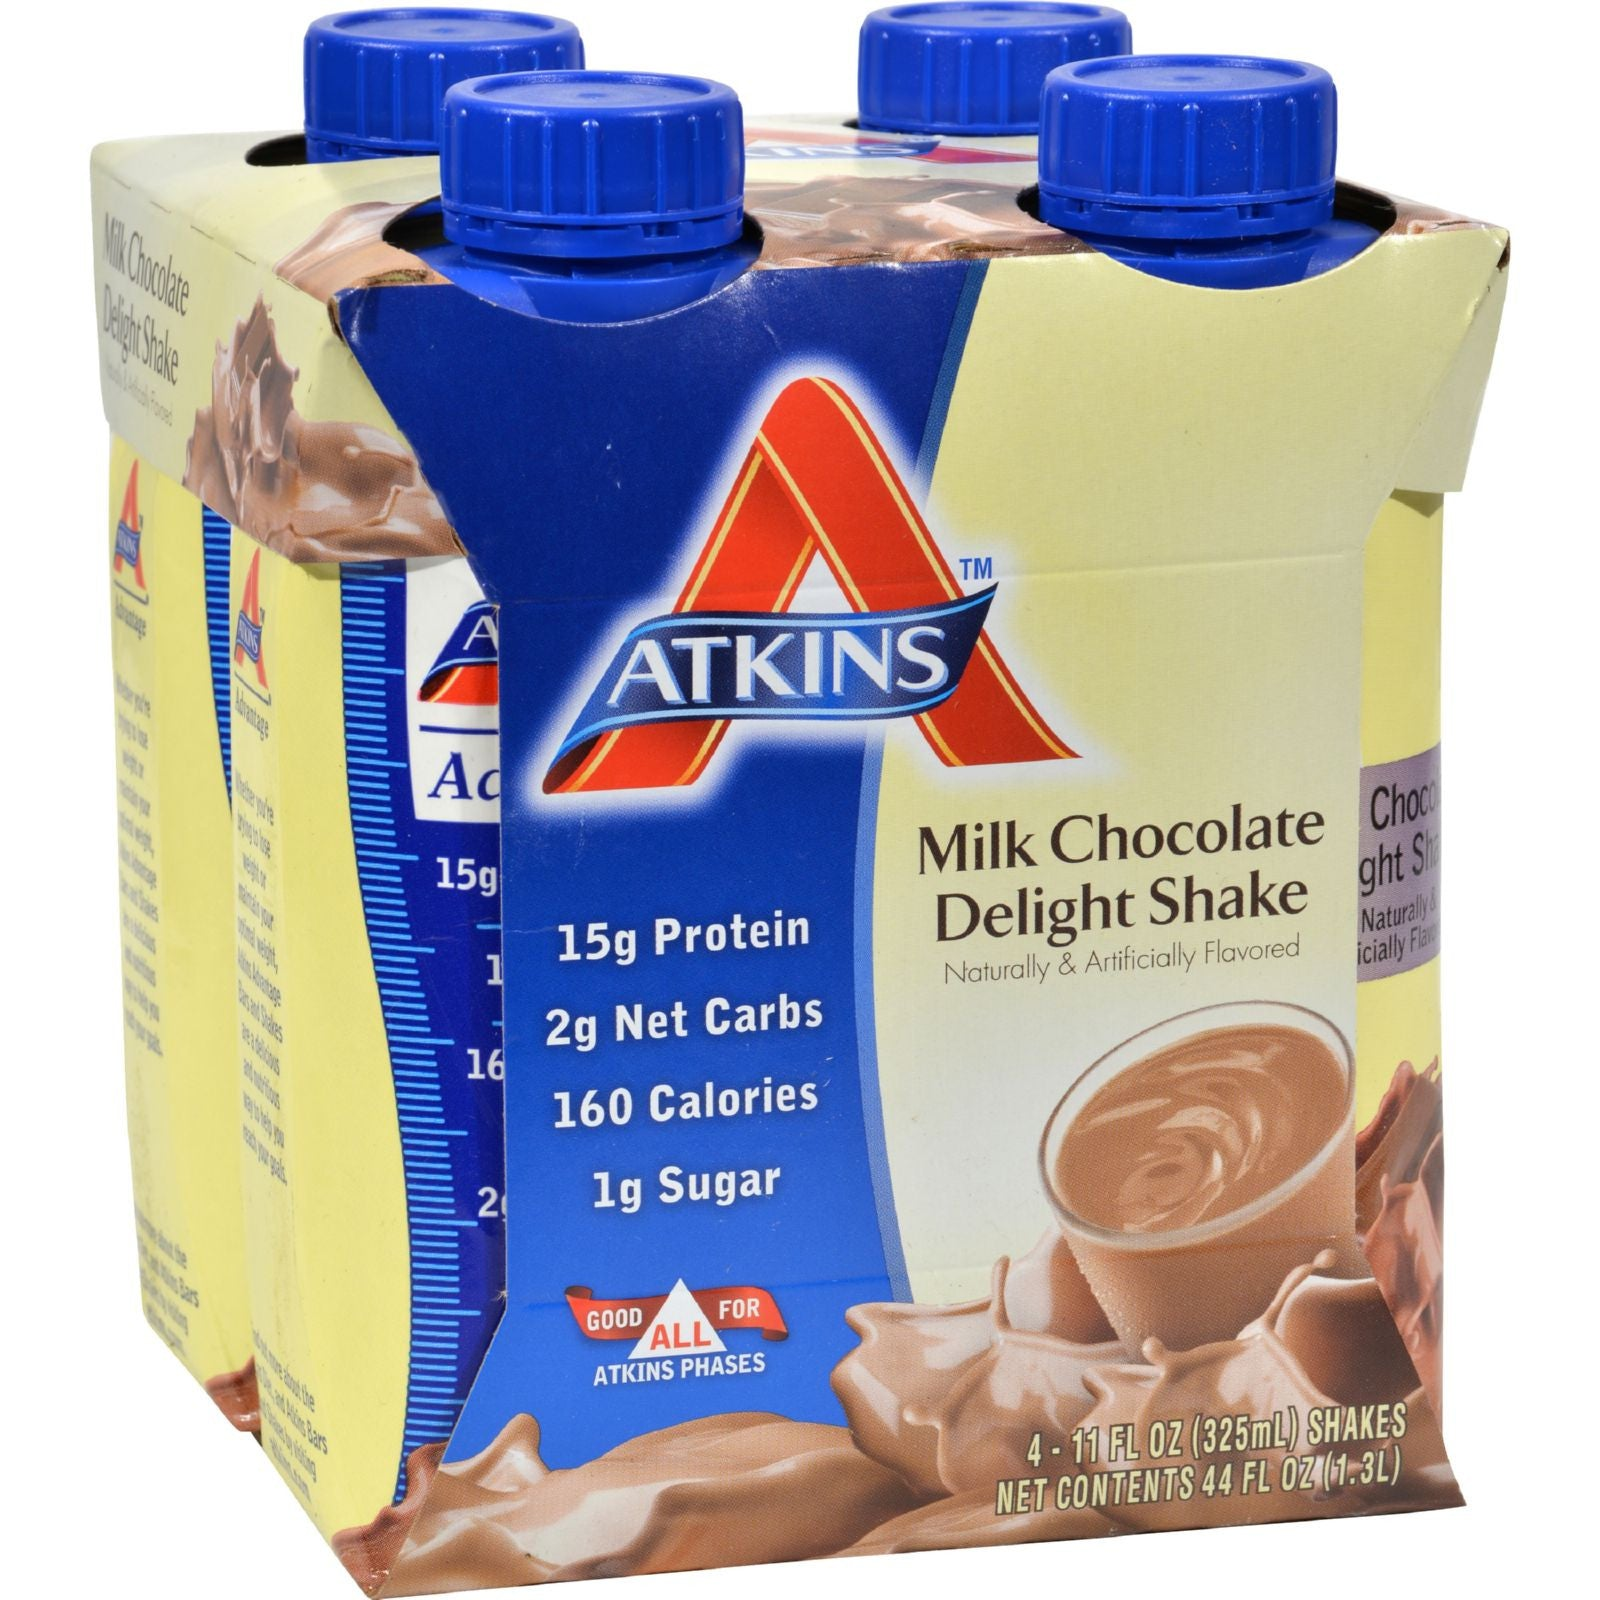 Atkins Advantage RTD Shake Milk Chocolate Delight - 11 fl oz Each ...